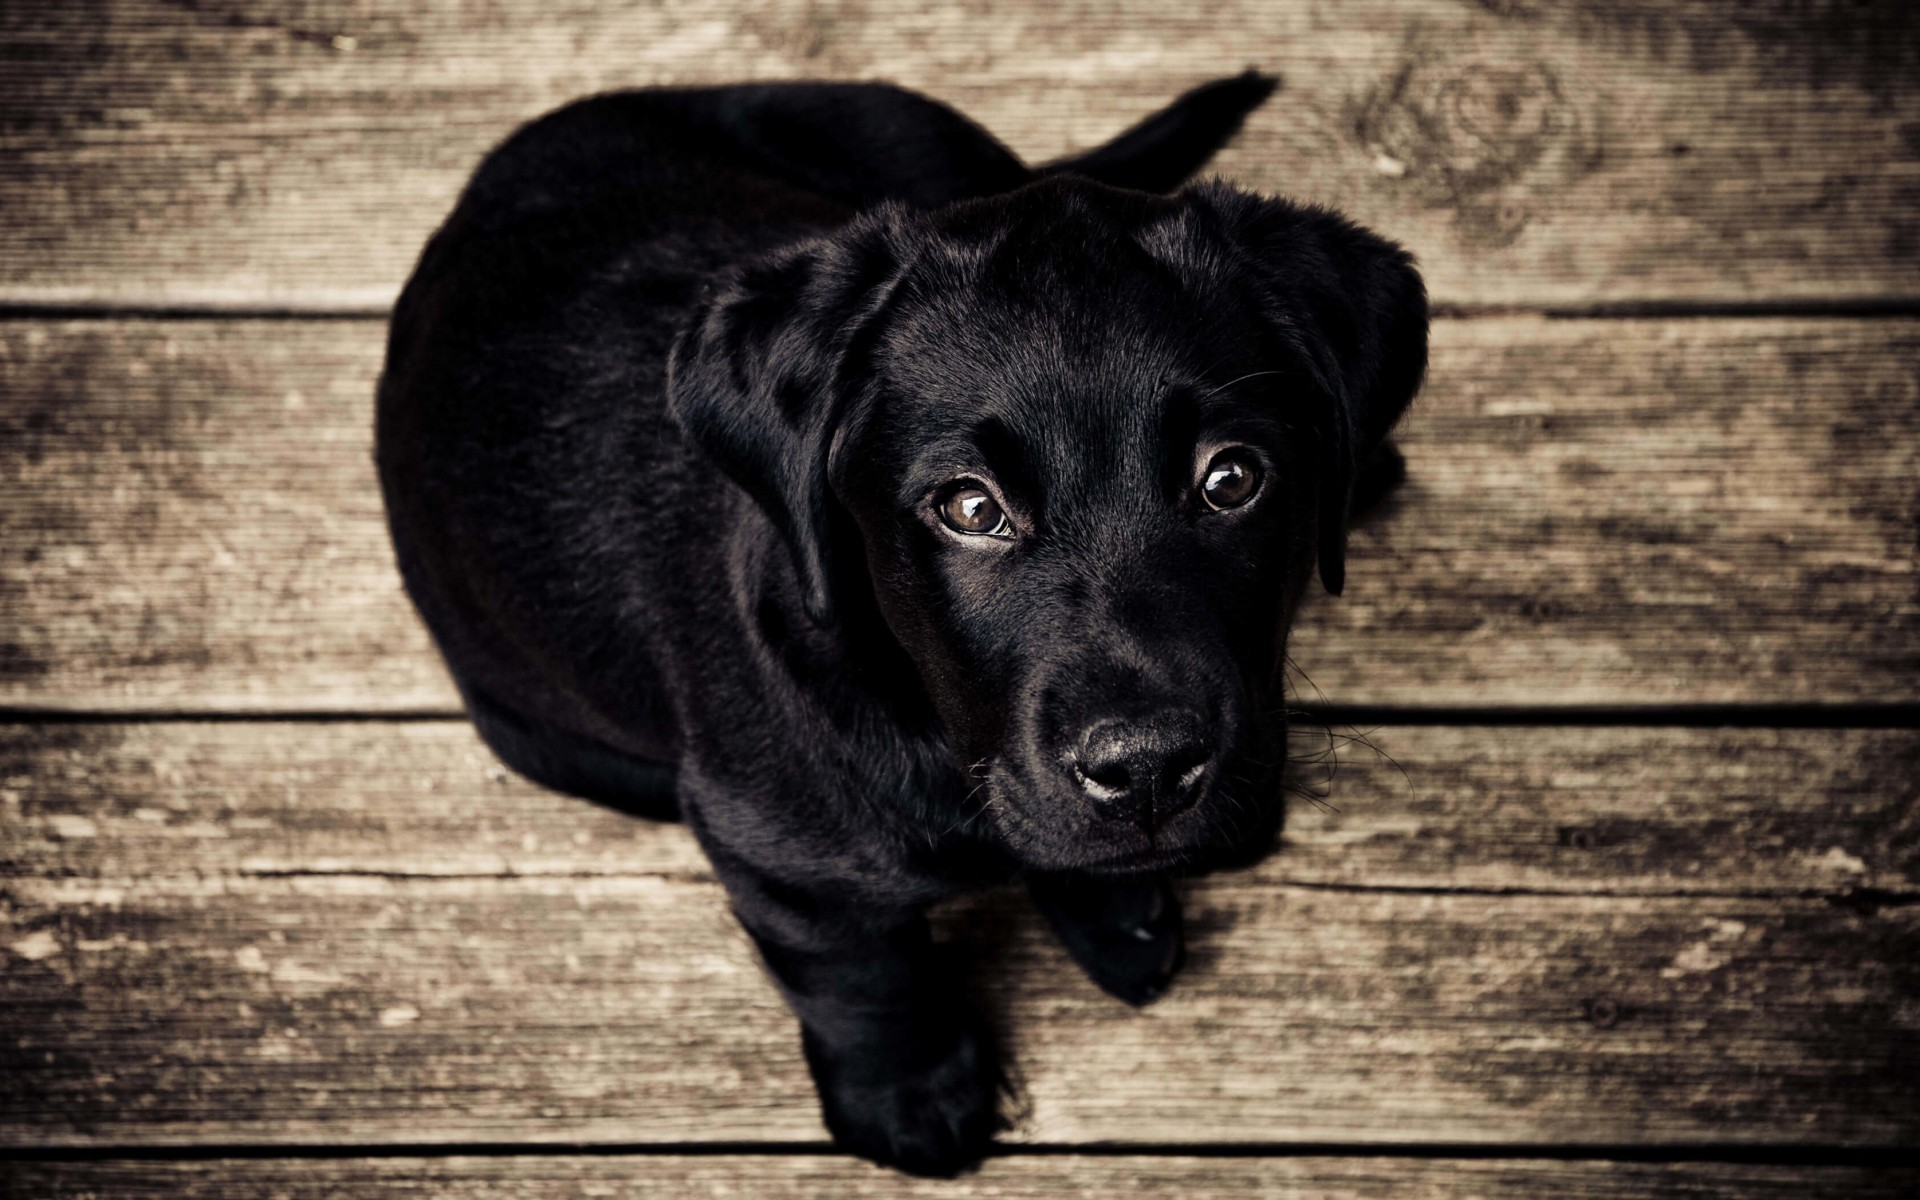 Black Lab Puppy Wallpaper for Desktop 1920x1200